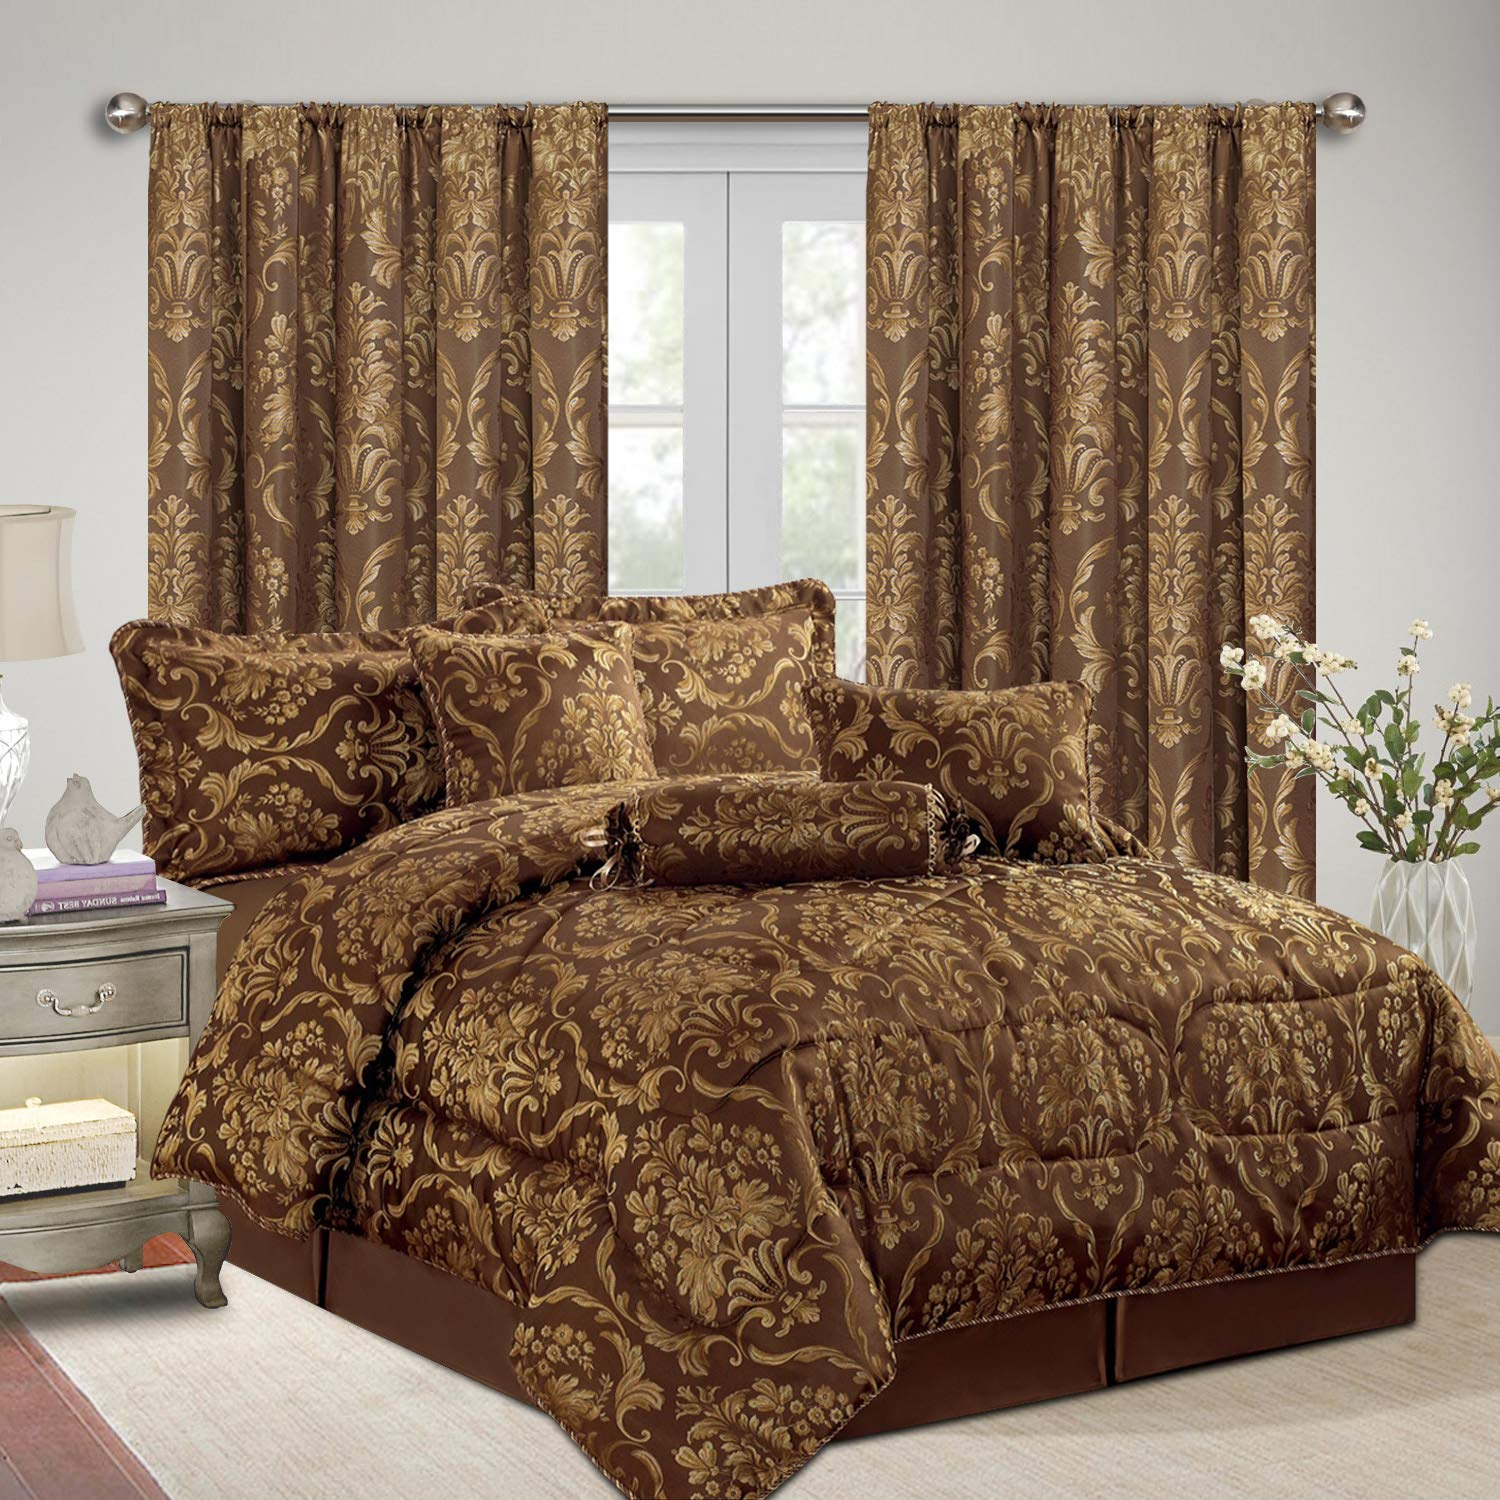 Ruby Double//Coffee // 90x90 Bed Sets Pillow Cases AS Imperial Rooms Luxury Jacquard 7 Piece Floral Bedding with matching Curtains Quilted Bedspreads Comforter Sets Decor Bedroom